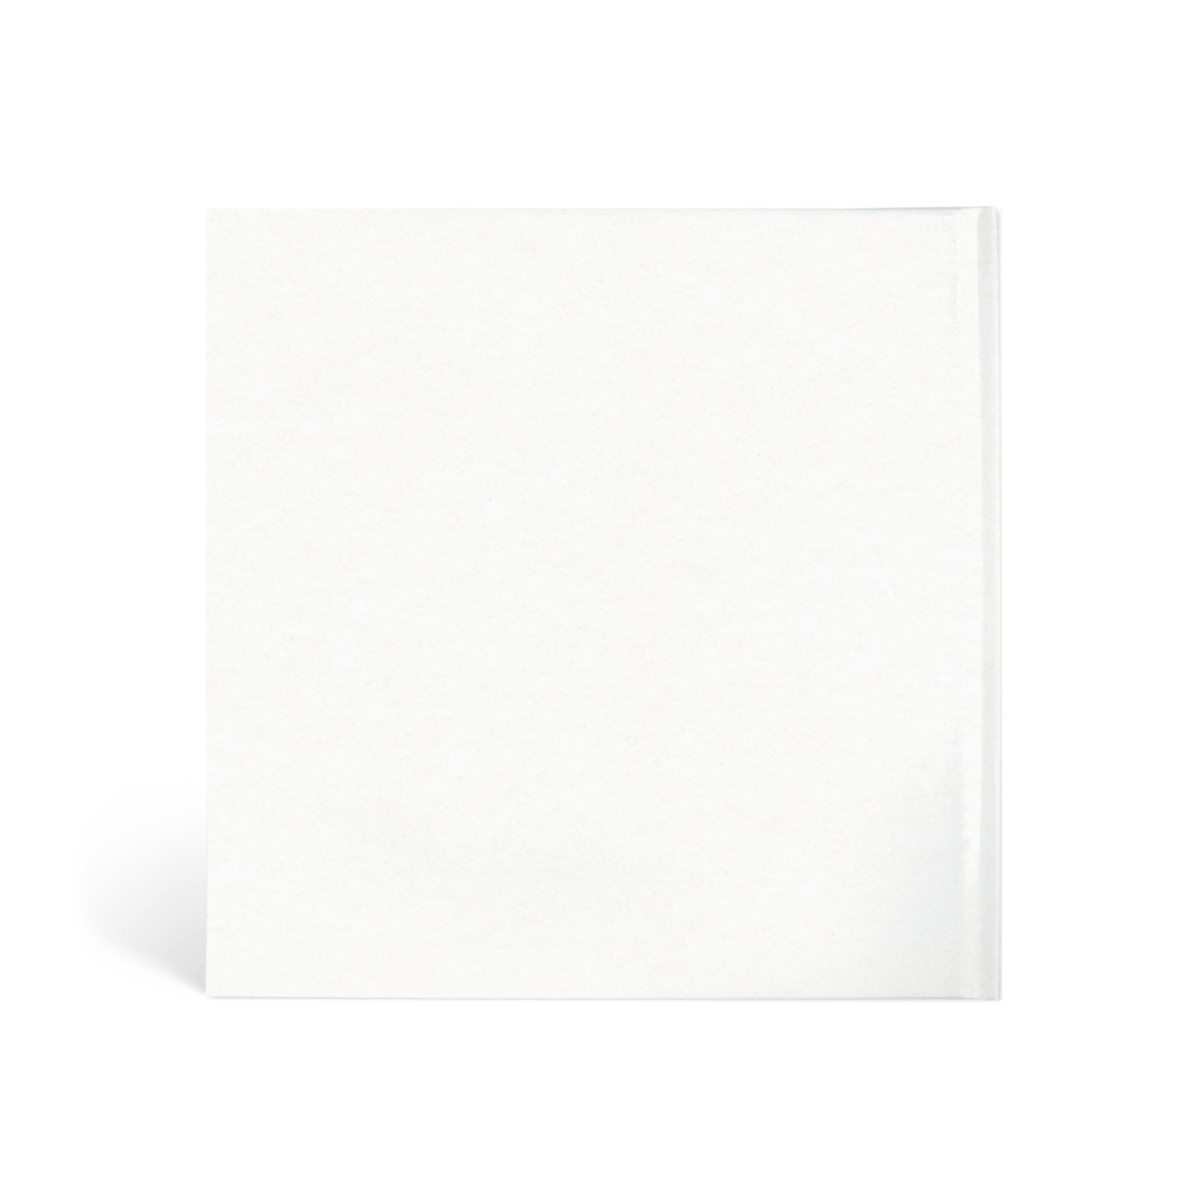 Https%3a%2f%2fwww.papier.com%2fproduct image%2f60465%2f33%2fthe minimalist 14469 back 1545923528.png?ixlib=rb 1.1